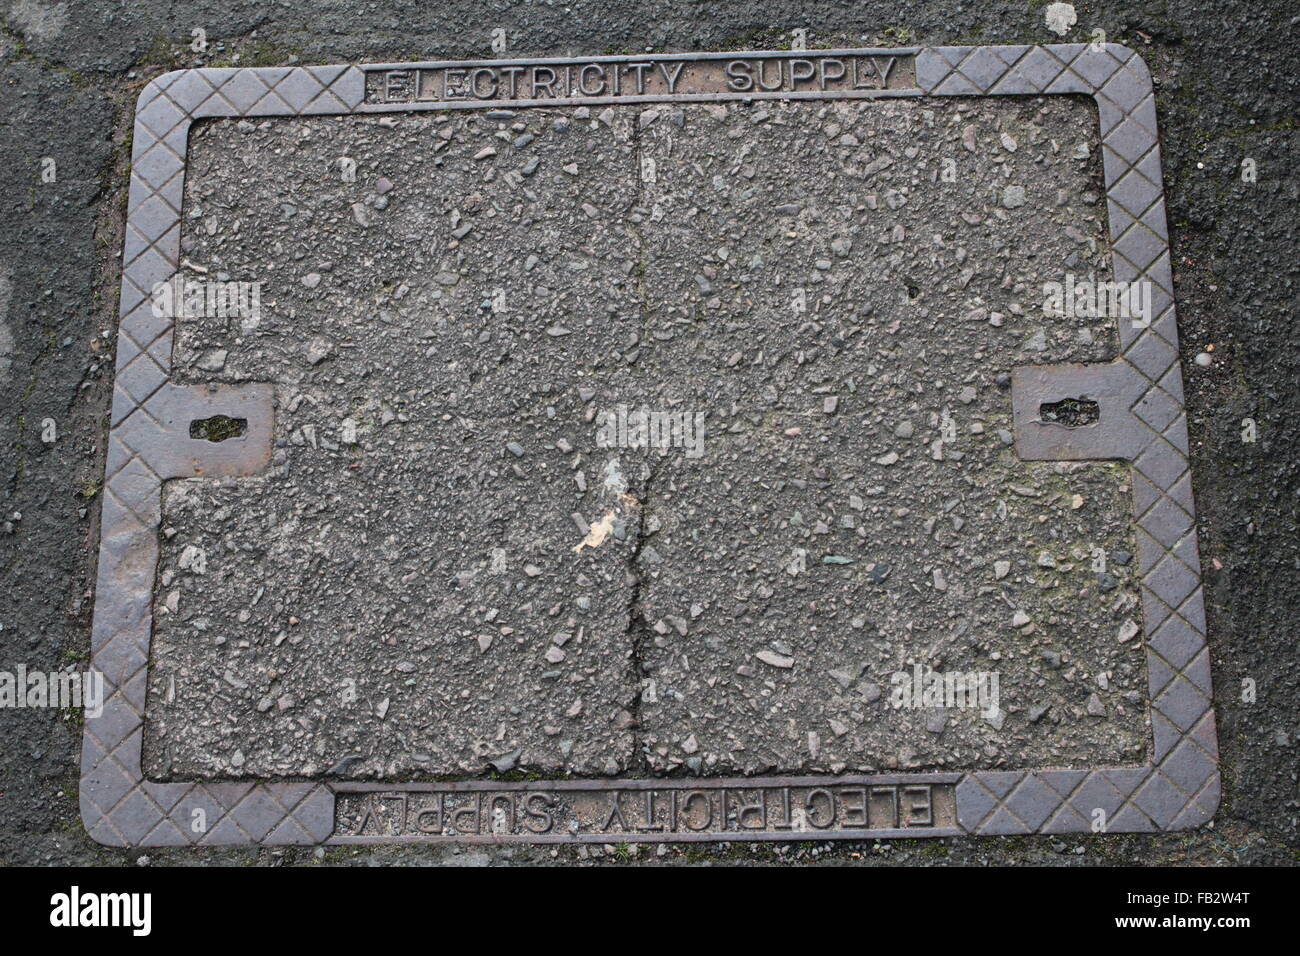 outdoor electricity utility company access cover - Stock Image